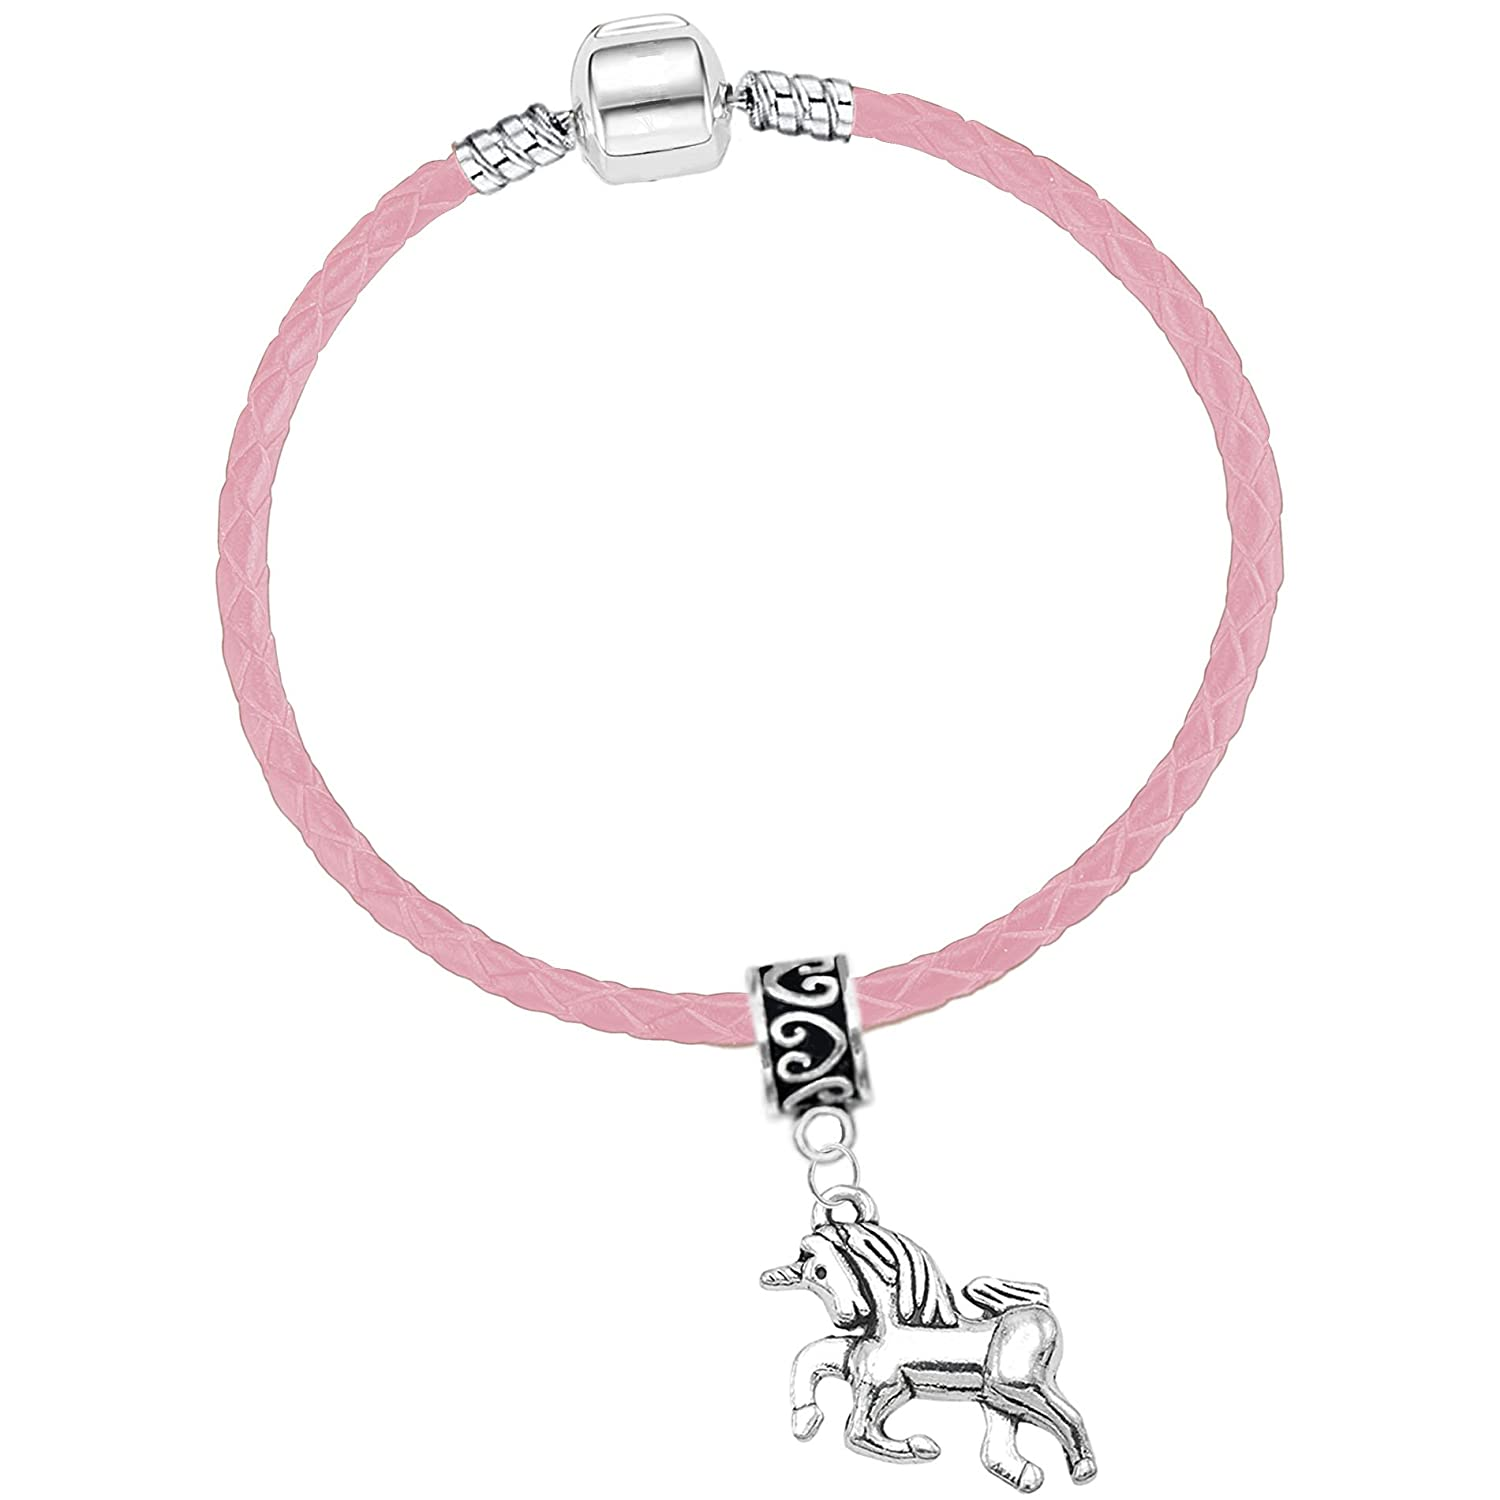 Girls Pink Leather Starter Charm Bracelet with Silver Unicorn and Gift Box Charm Buddy ® 15cm Pink PAND Ch-71 Starter